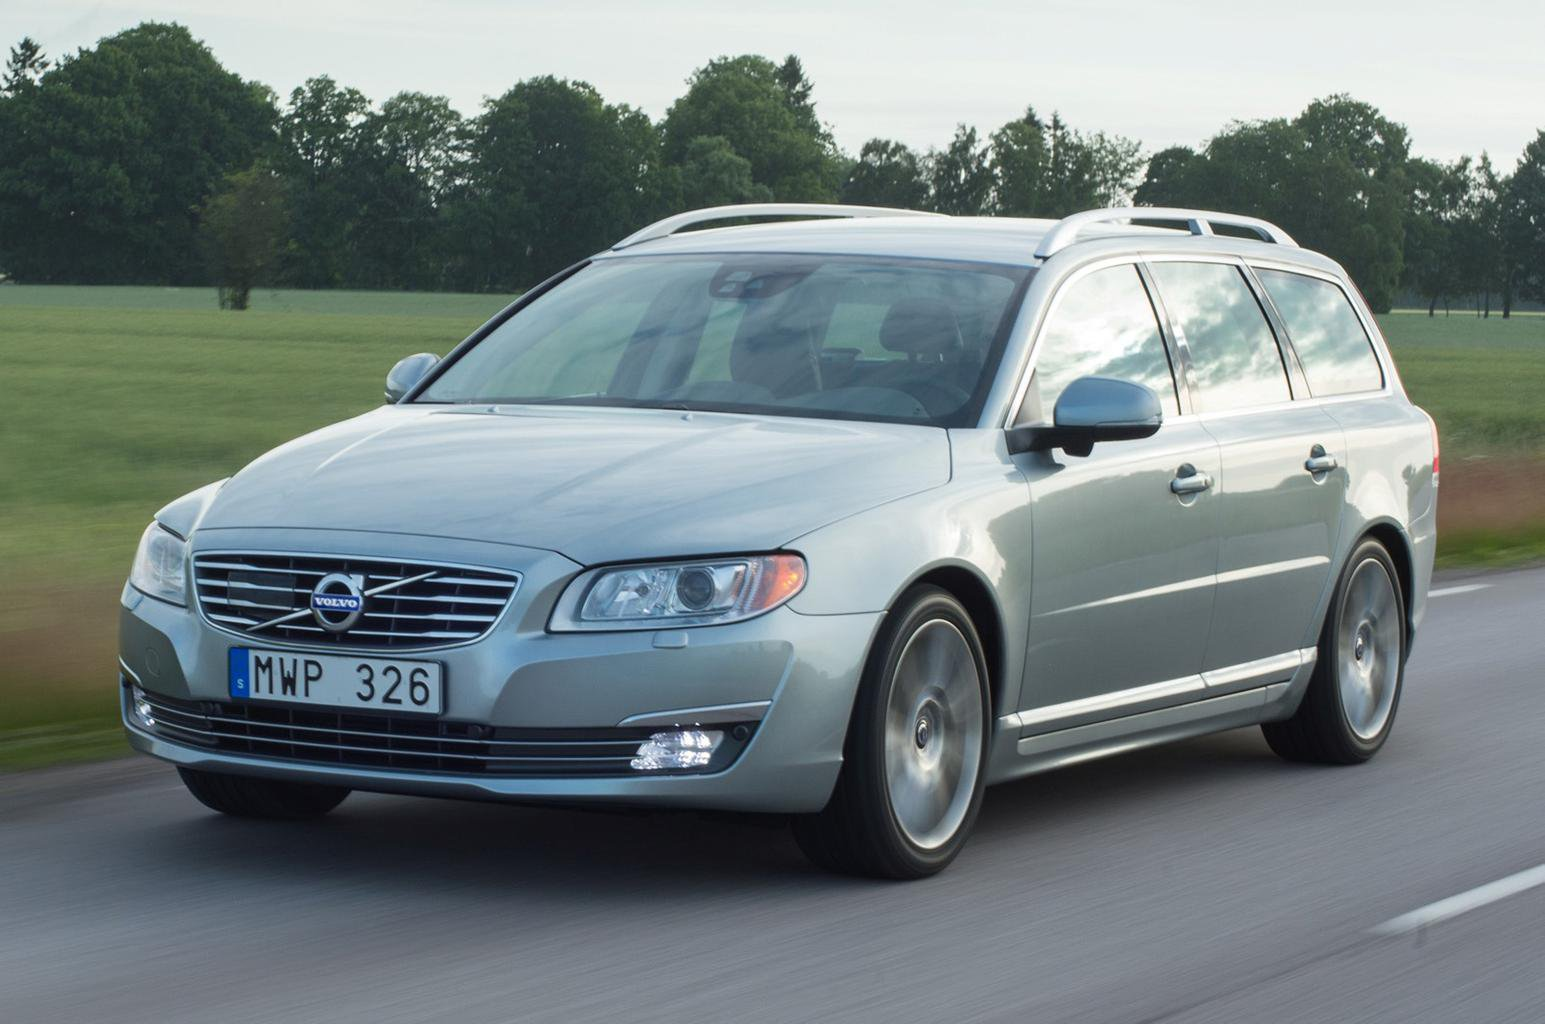 Deal of the Day: Volvo V70